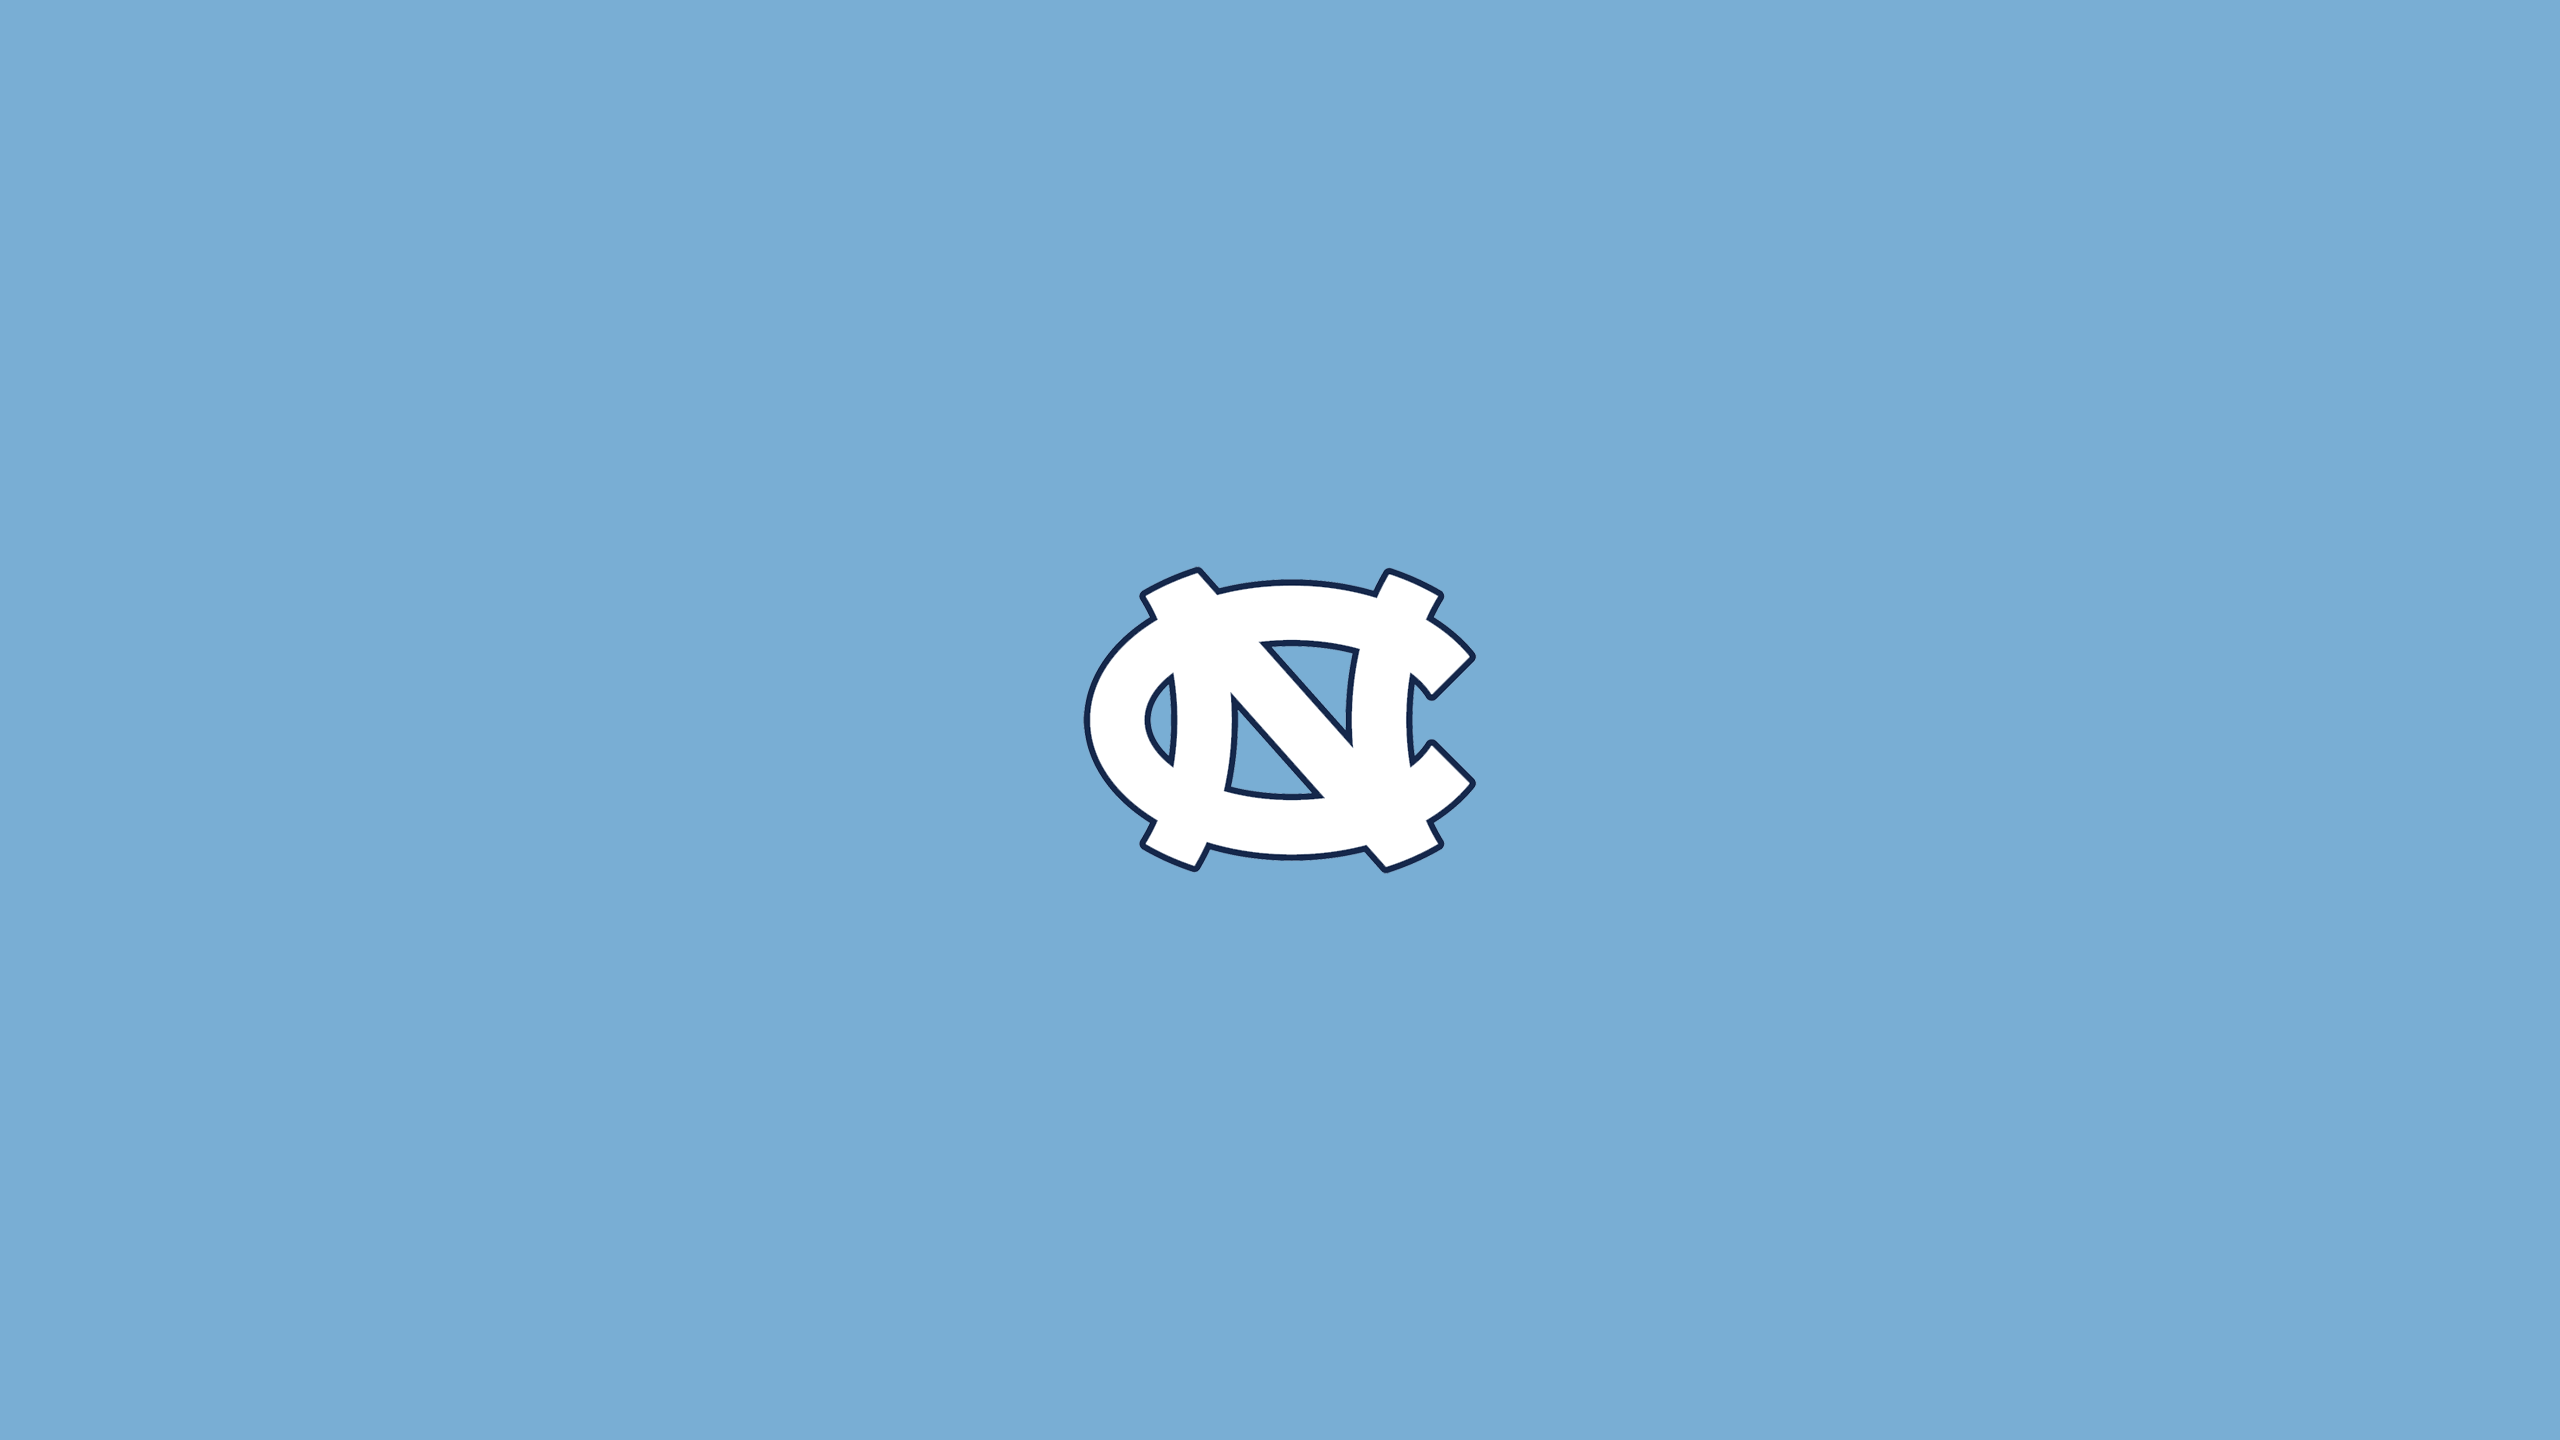 Unc Tarheels Wallpapers Hd